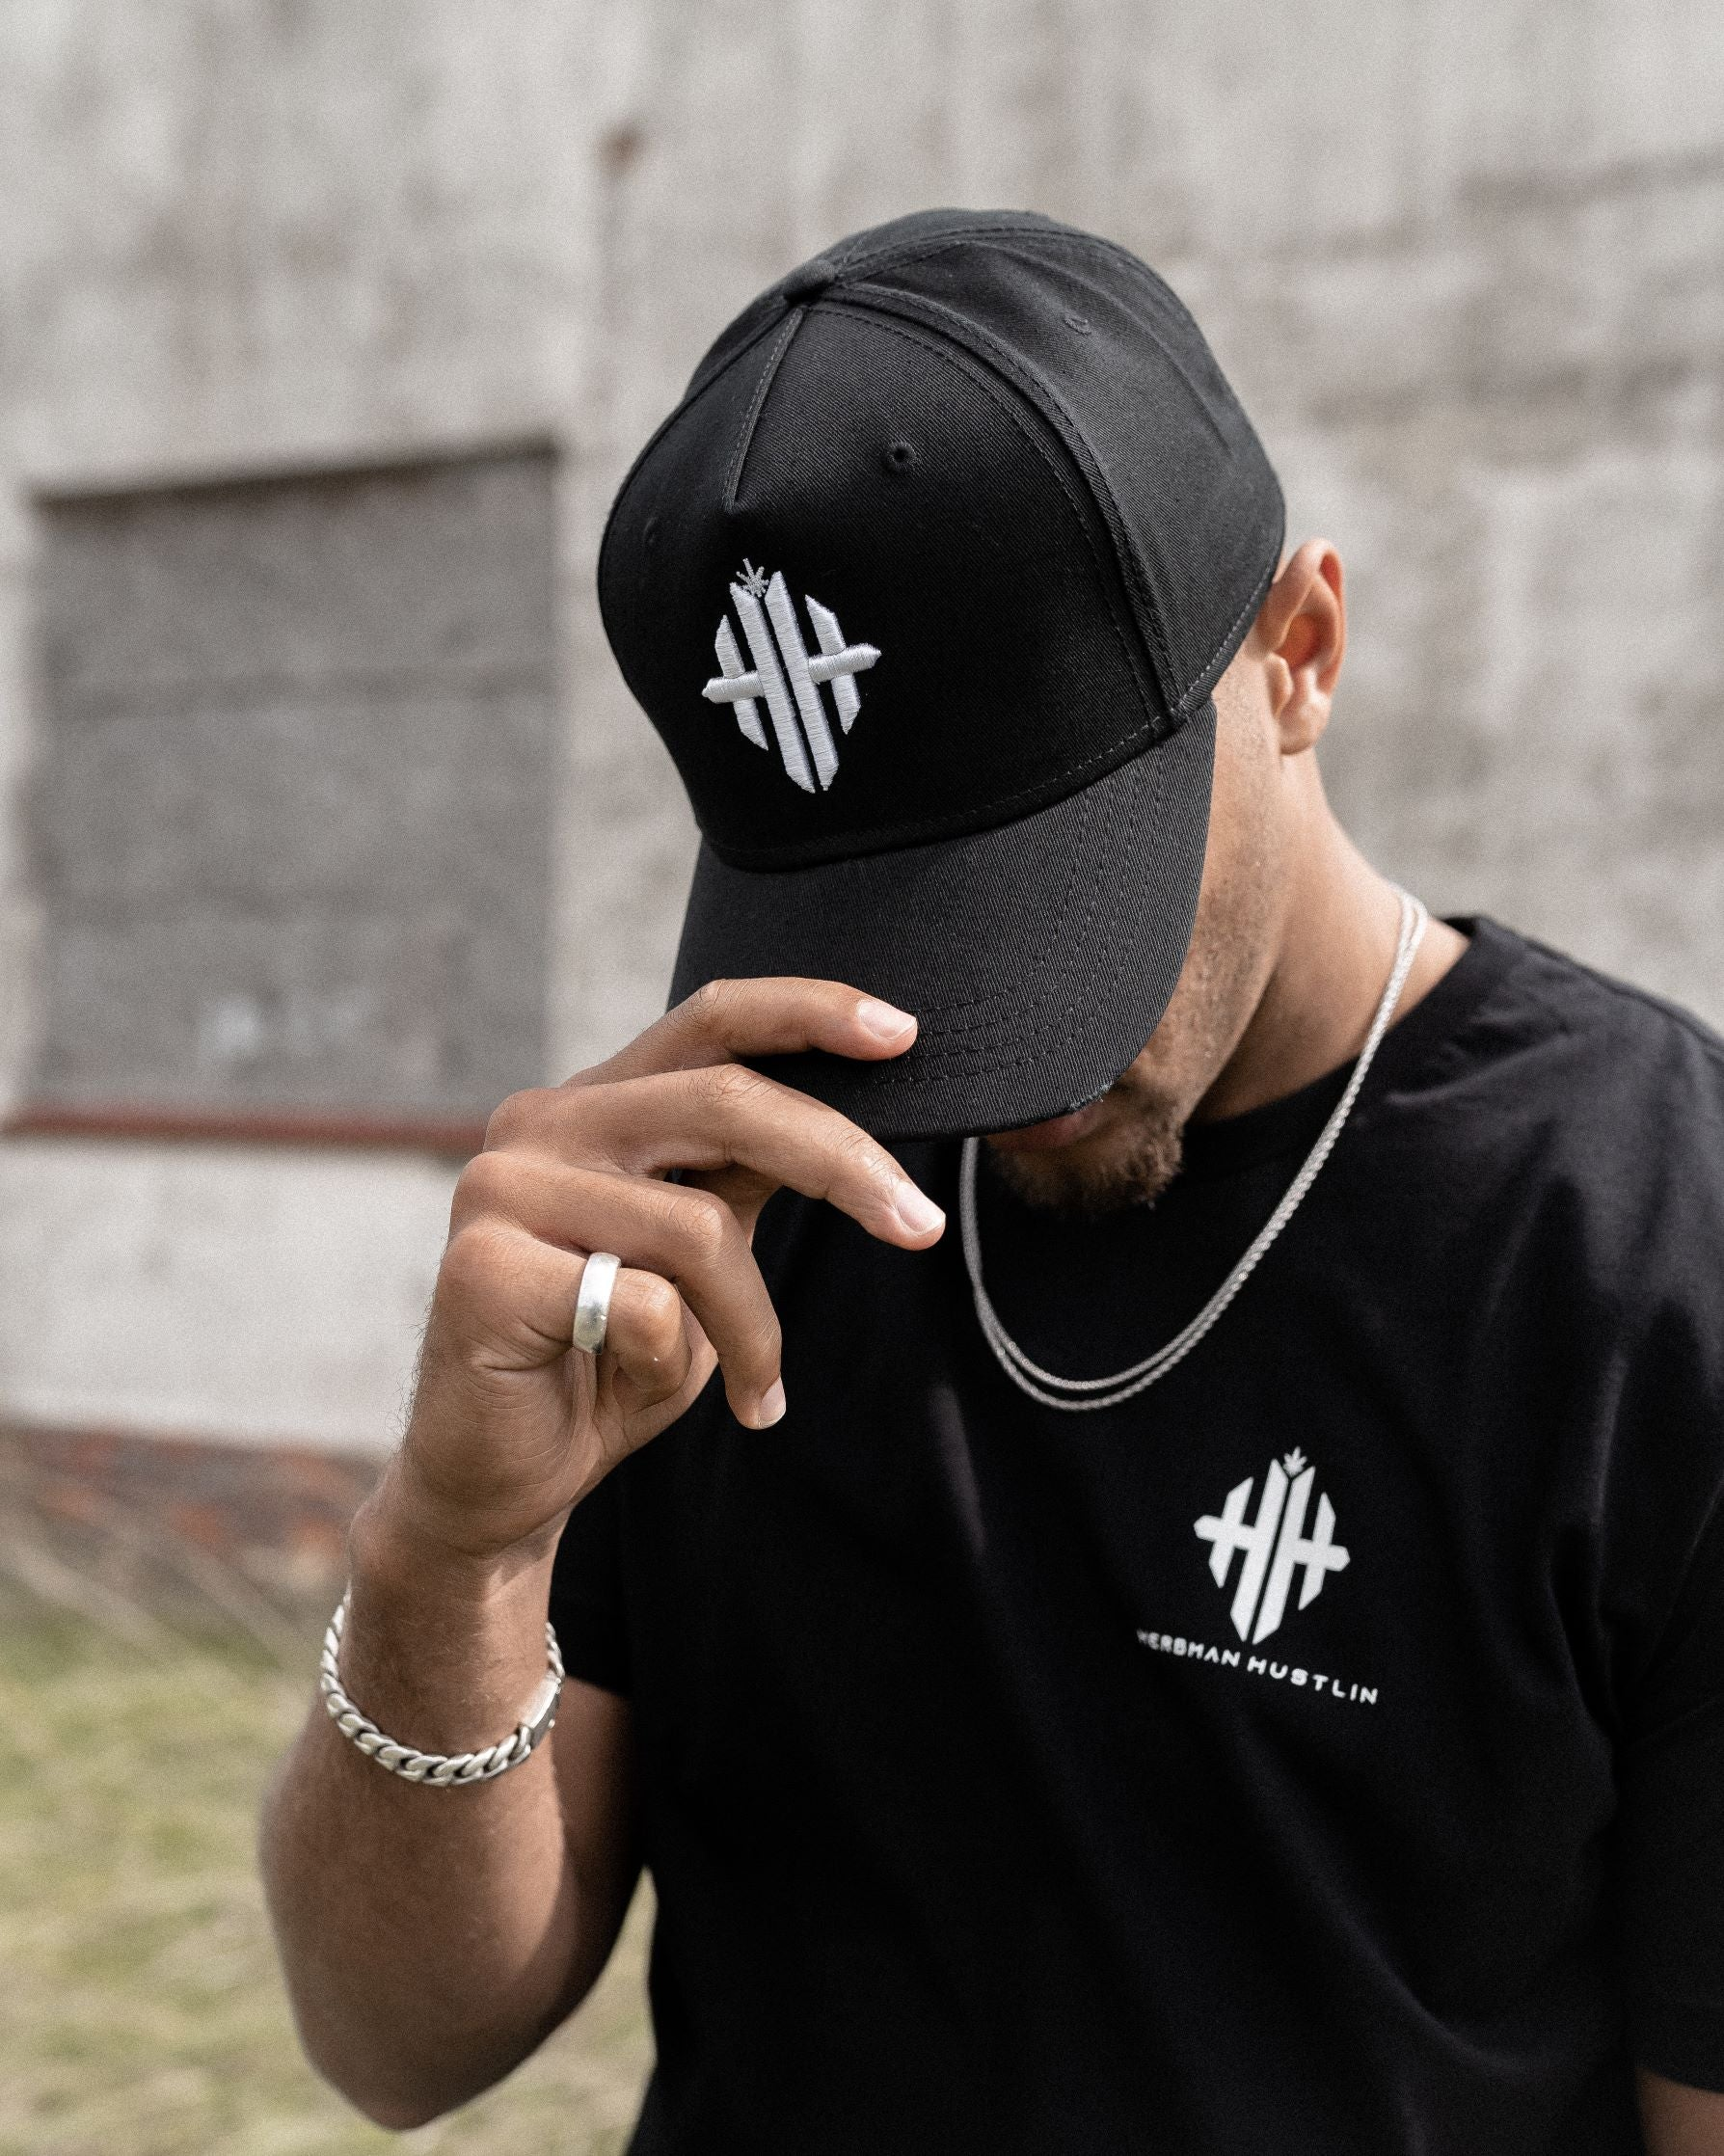 Herbman Hustlin Monogram Cap - Black/White